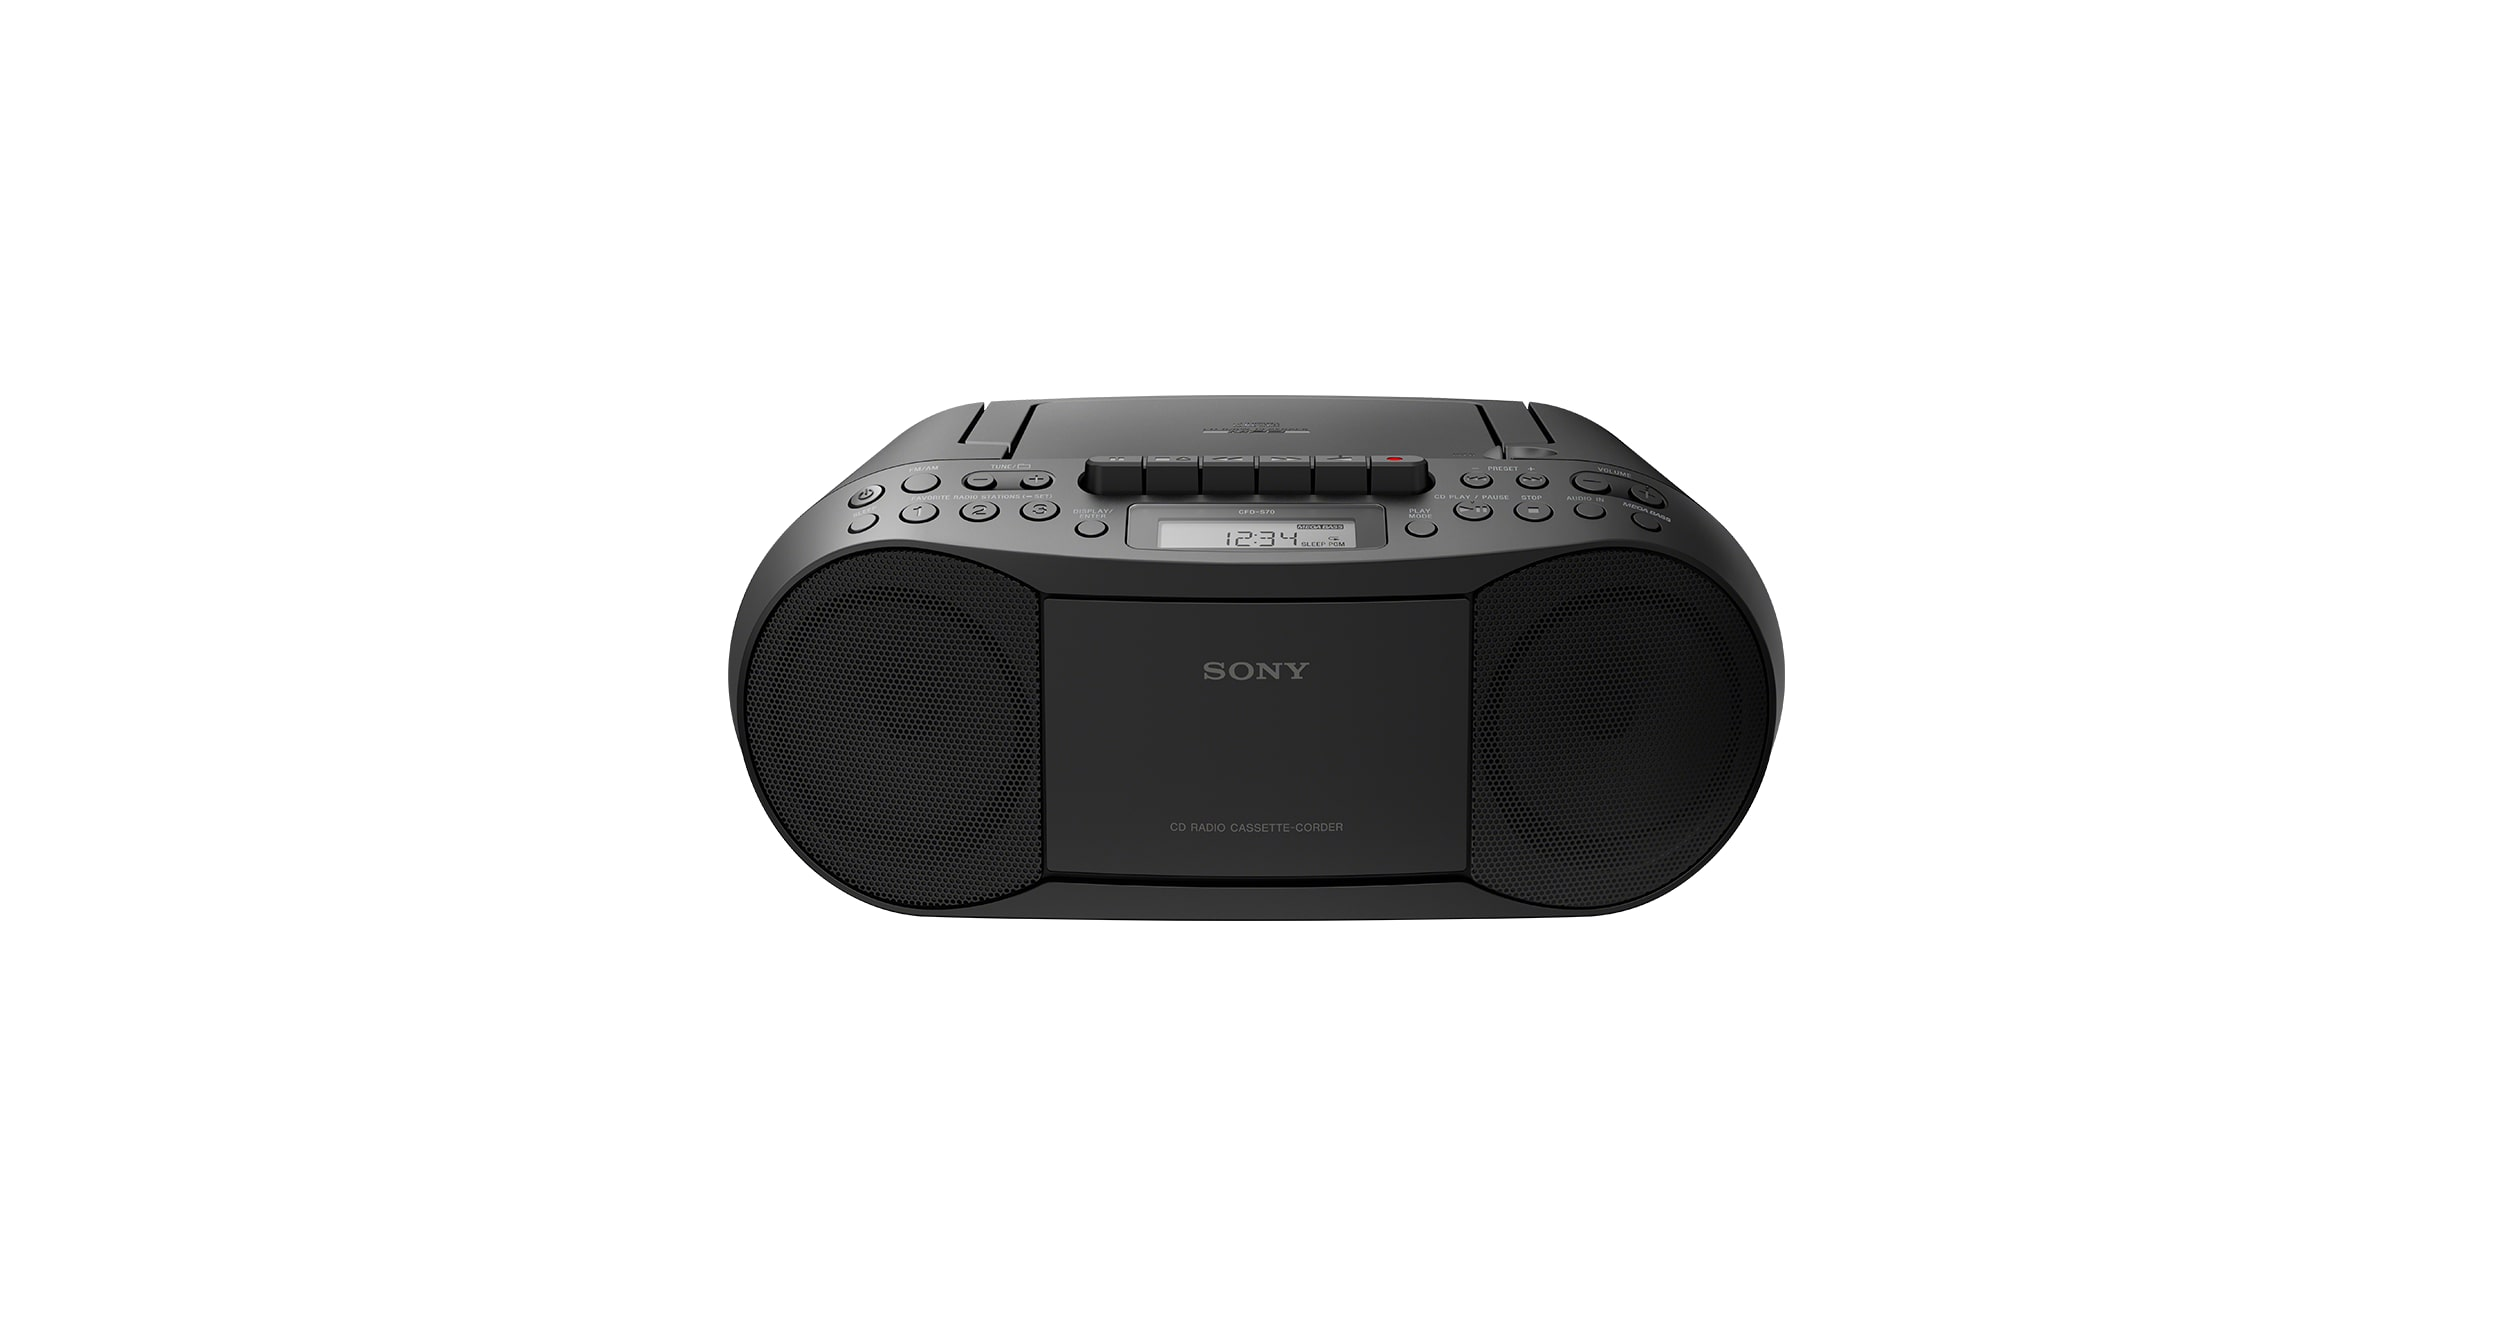 Ongebruikt Cassette Tape and CD Player with Radio | CFD-S70 | Sony US GW-33